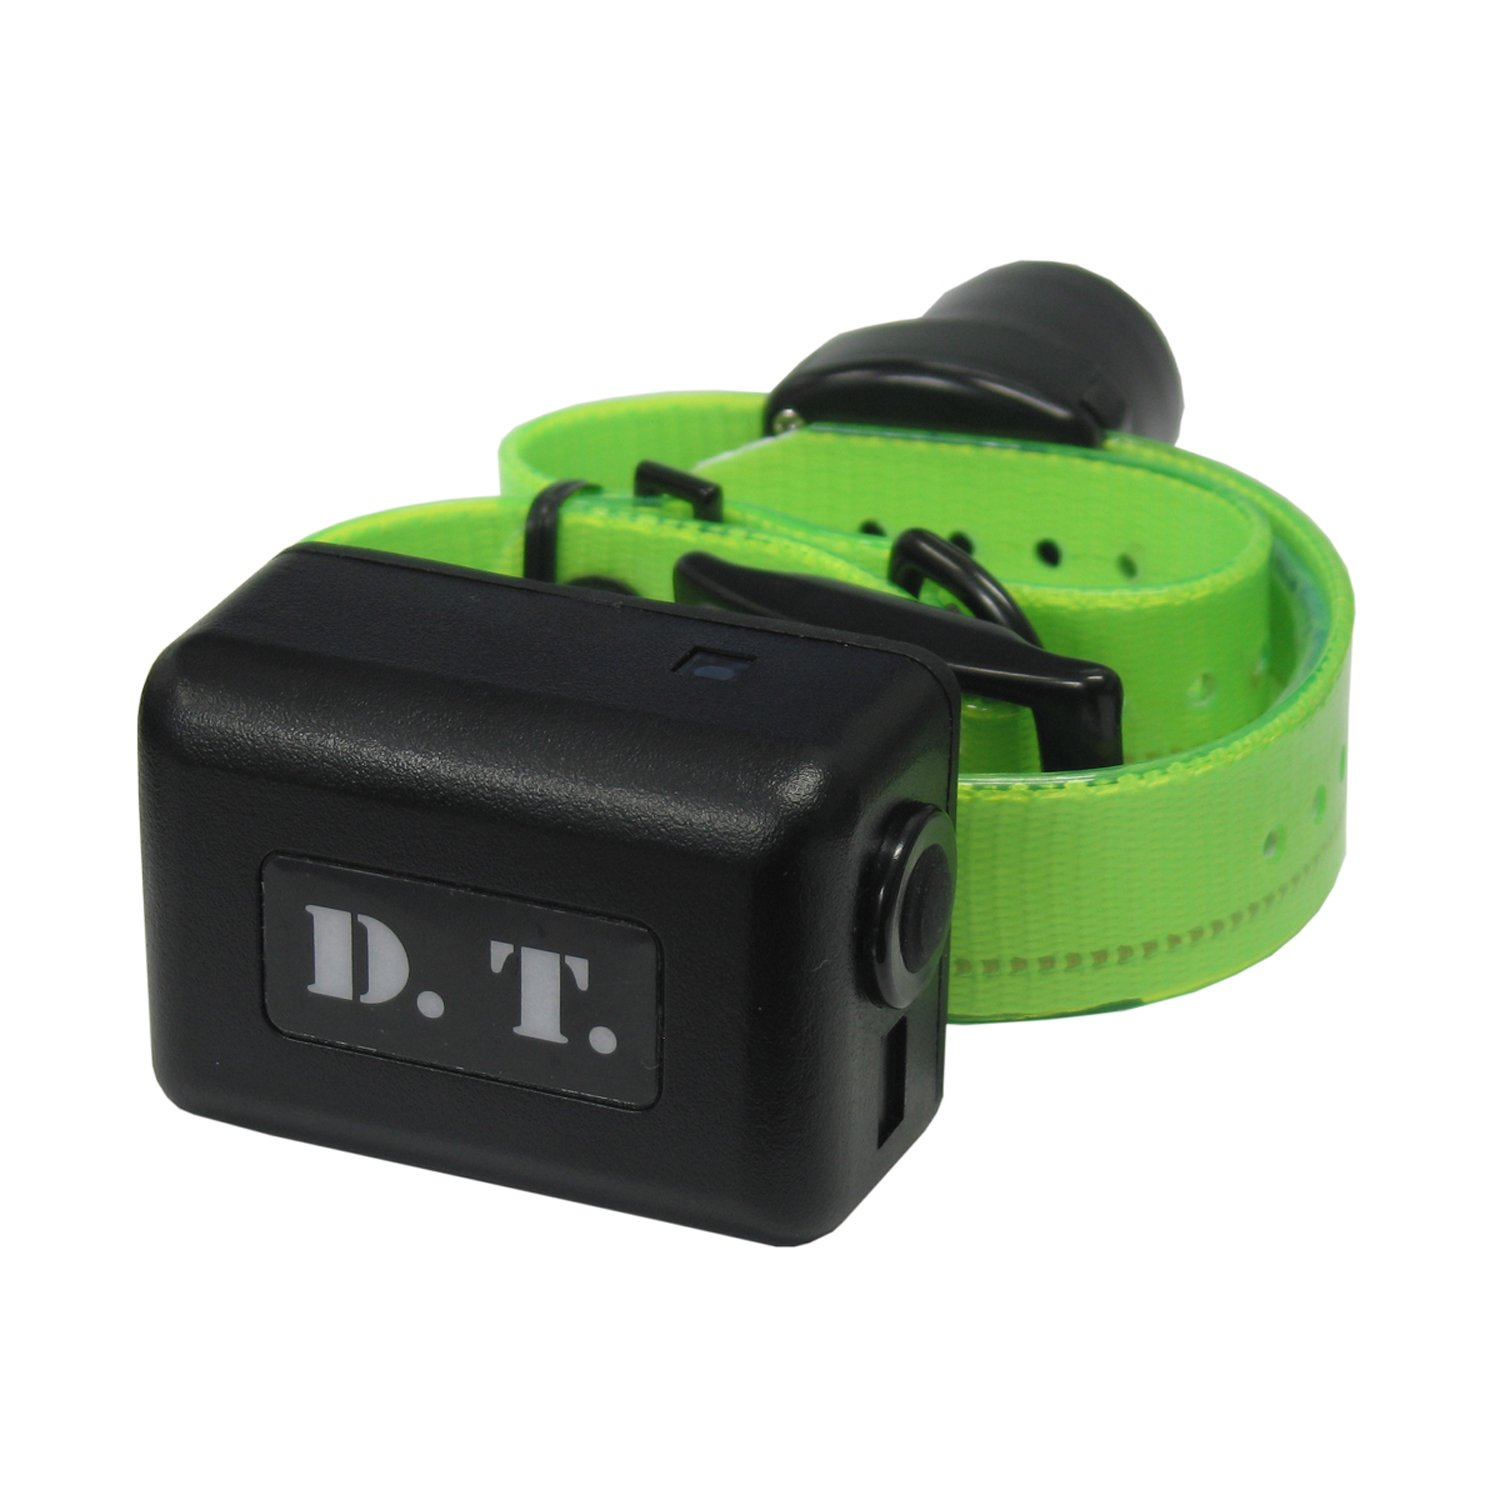 DT Systems Add-On or Replacement Beeper Collar Receiver, Fluorescent Green